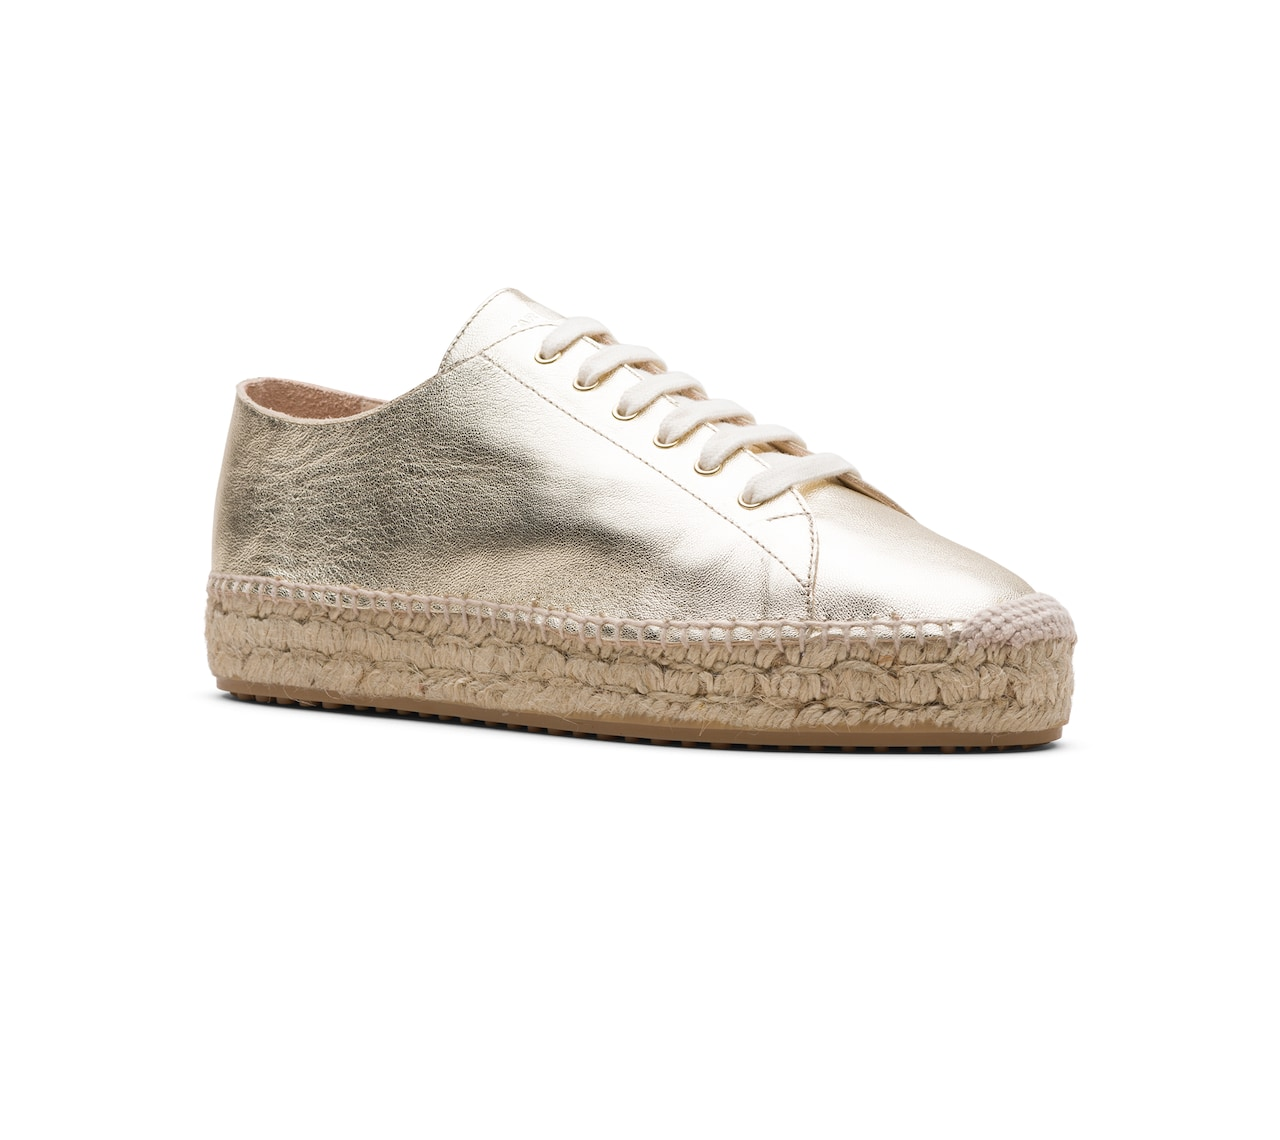 ESPADRILLAS SHOES SOFT LEATHER GOLD/SILVER